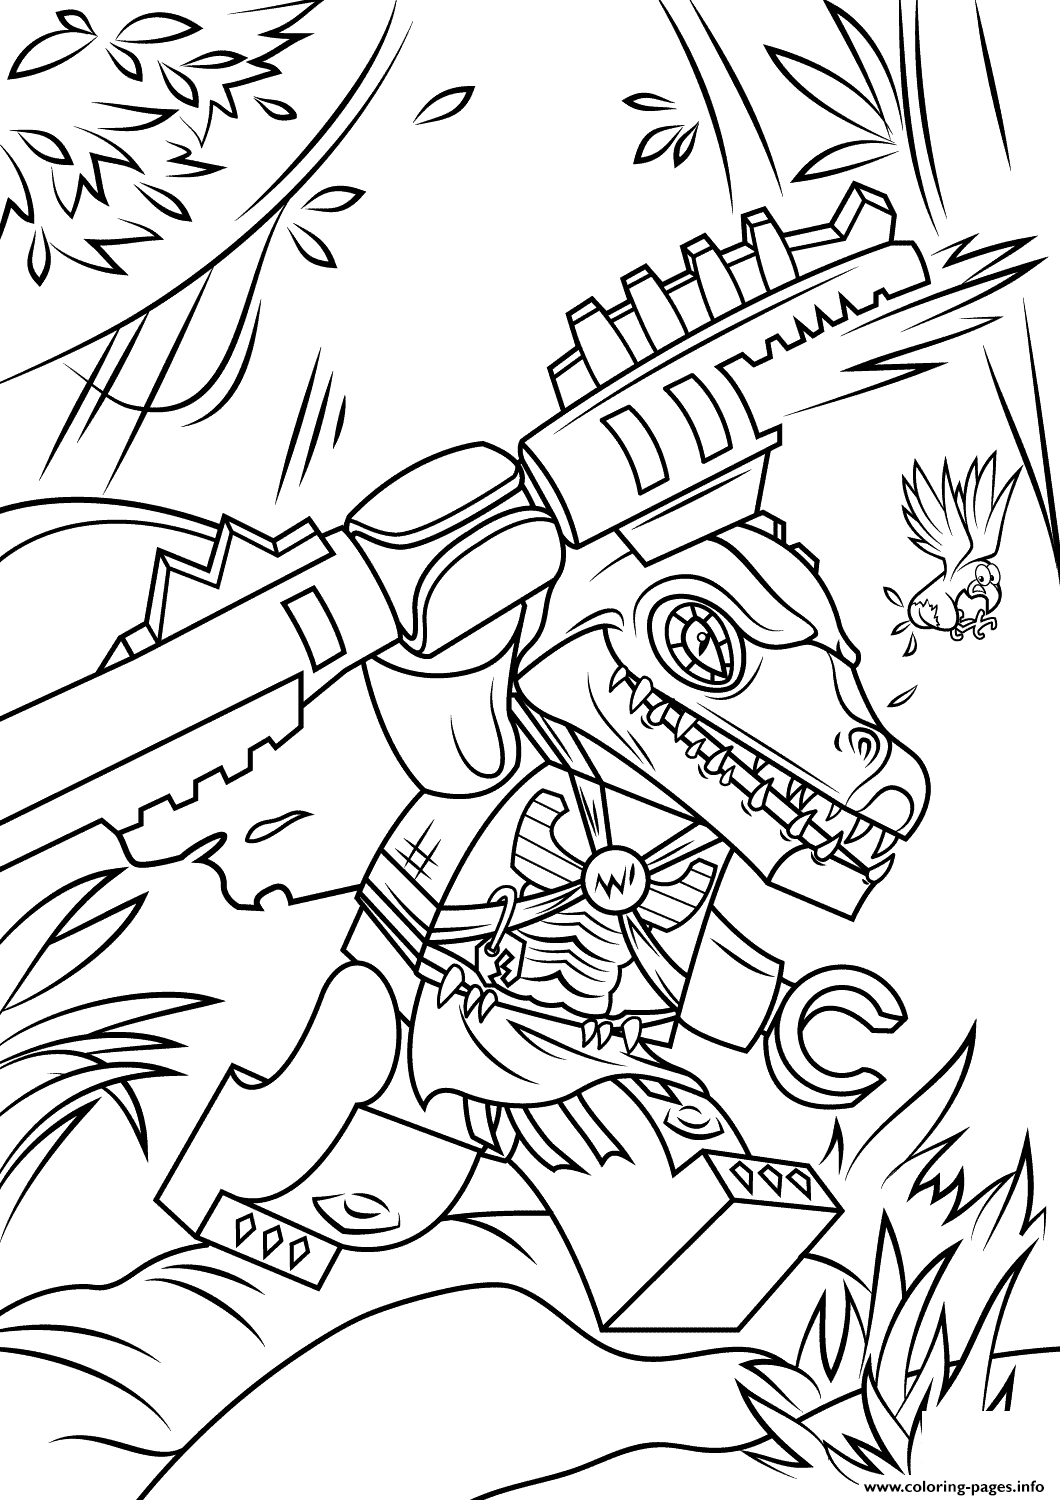 Lego Chima Cragger Coloring Pages Printable